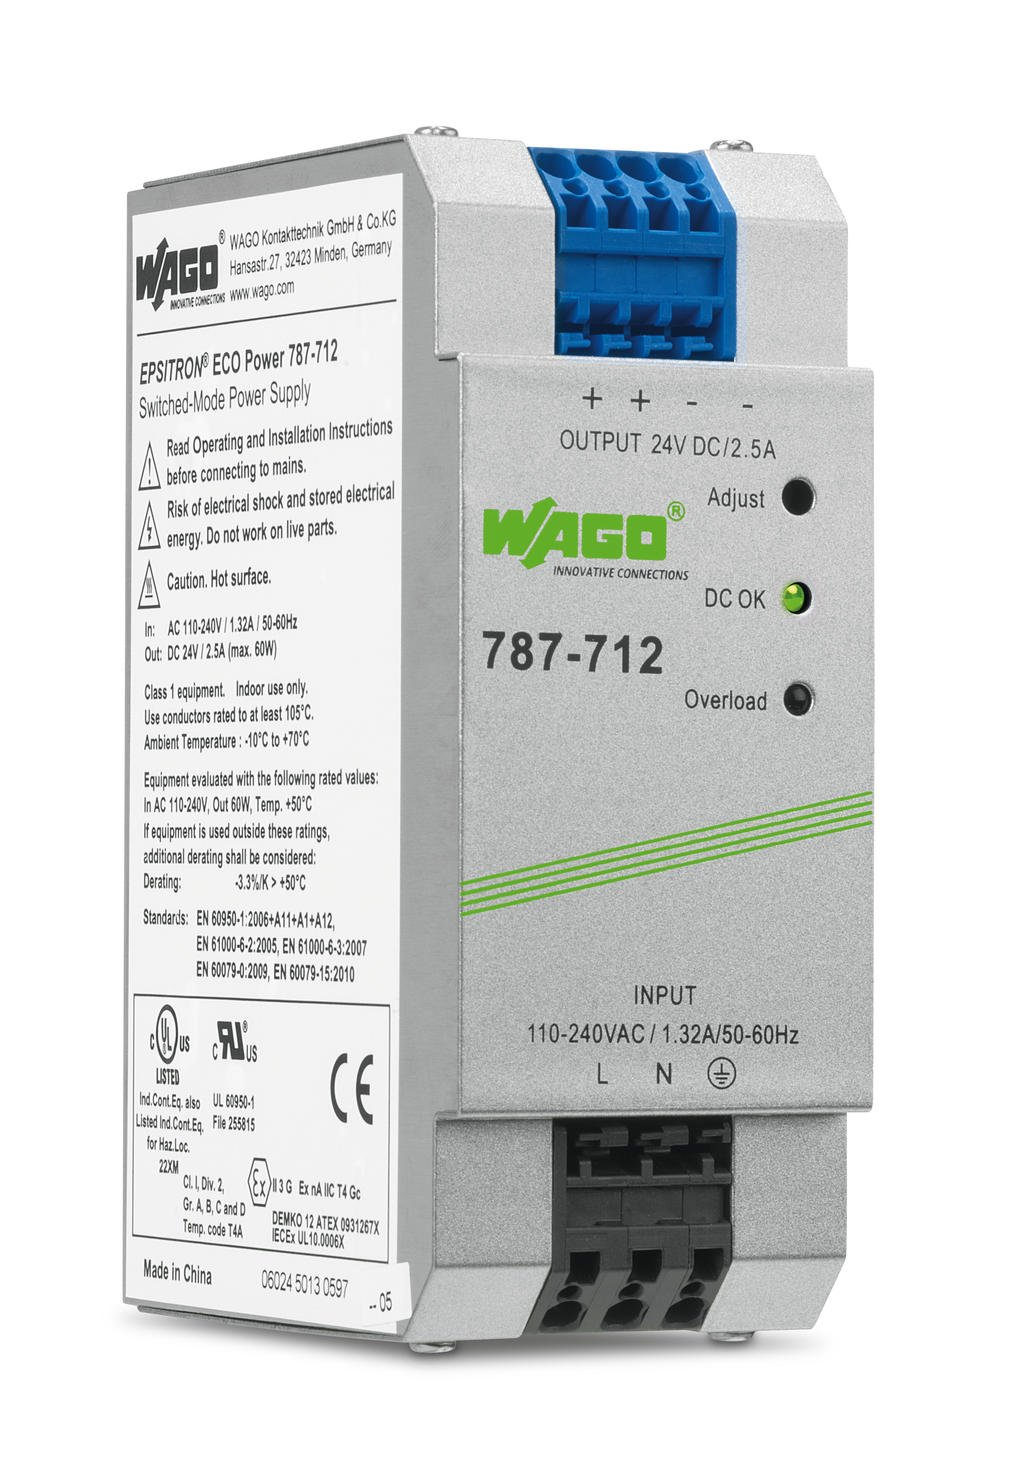 Wago Switched Mode Power Supply 787 712 Identification Of Conductors For Both Ac And Dc Circuits Epsitron Eco 1 Phase 24 Vdc Output Voltage 25 A Current